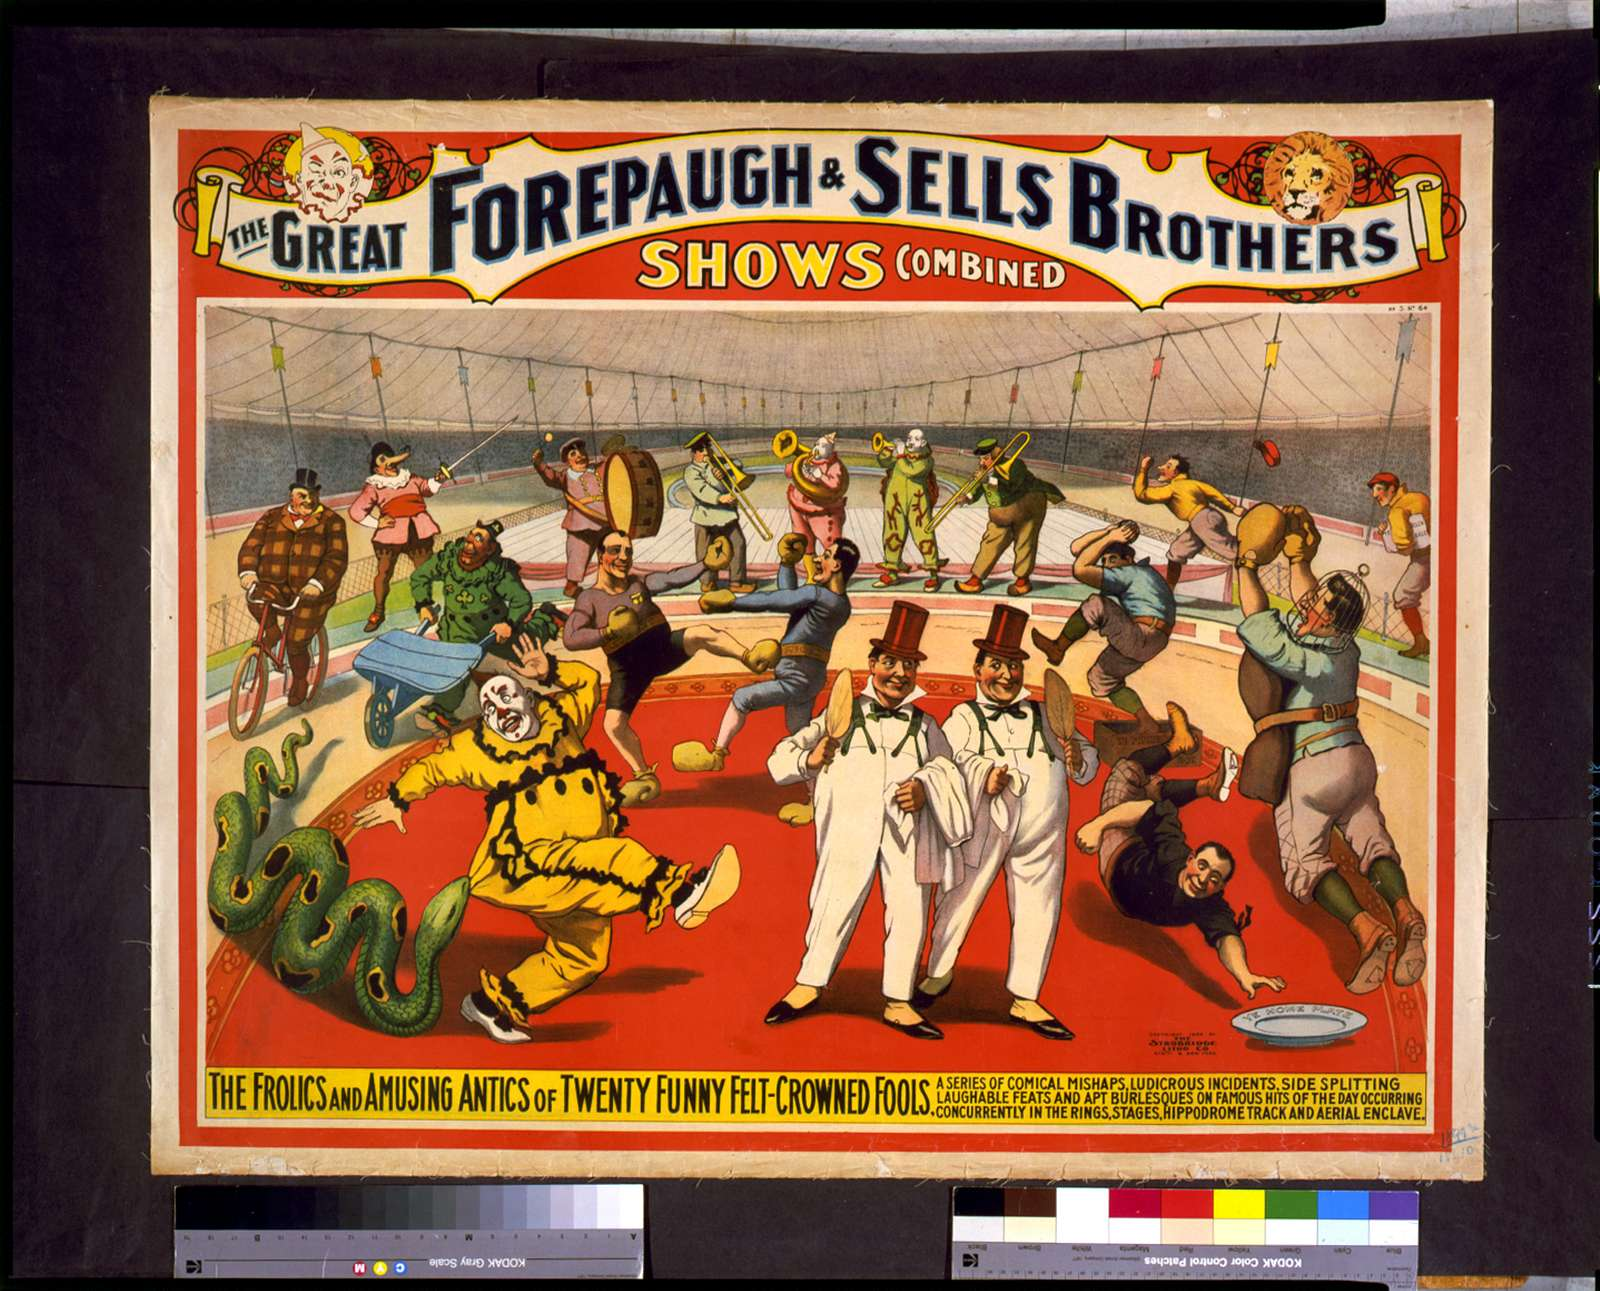 The Great Forepaugh & Sells Brothers shows combined. The frolics and amusing antics of twenty funny felt-crowned fools. ...